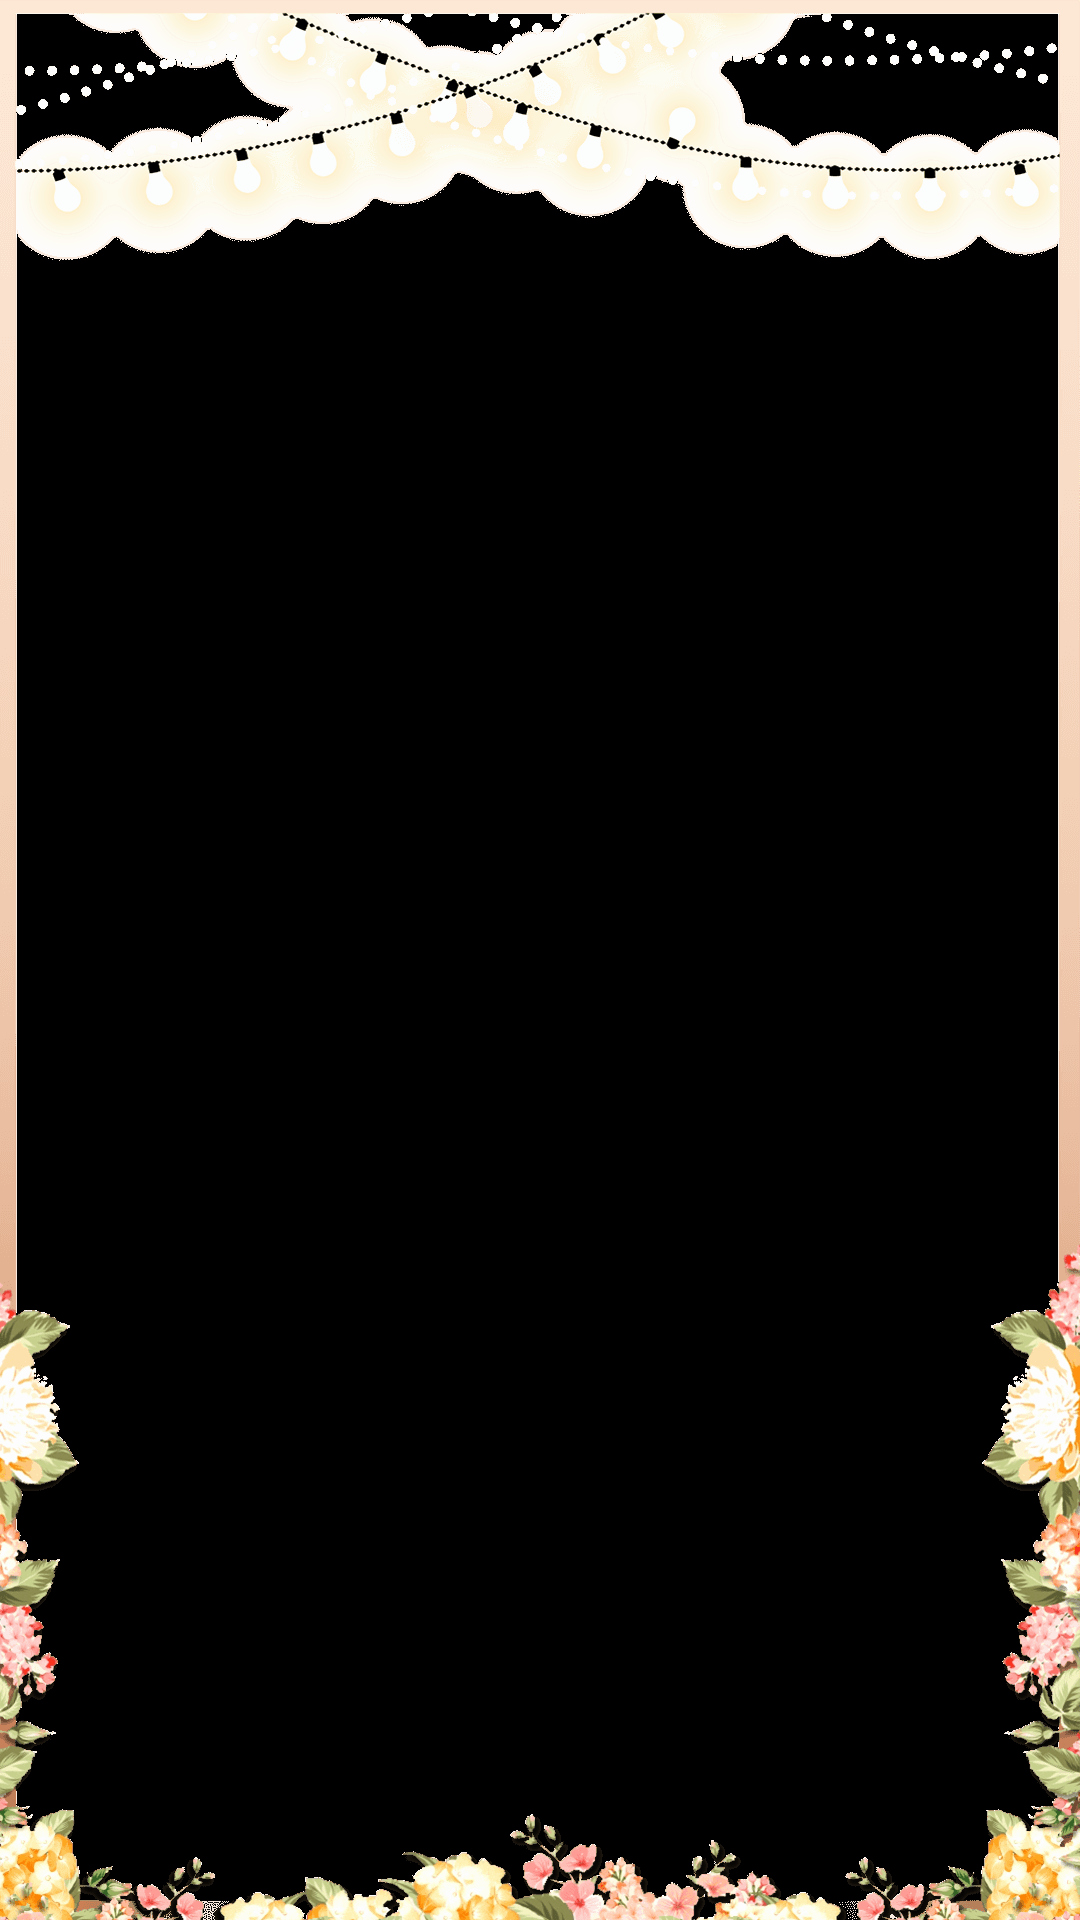 Geofilter Template Free Beautiful Elegant Rose Gold Spring Floral Wedding Snapchat Filter